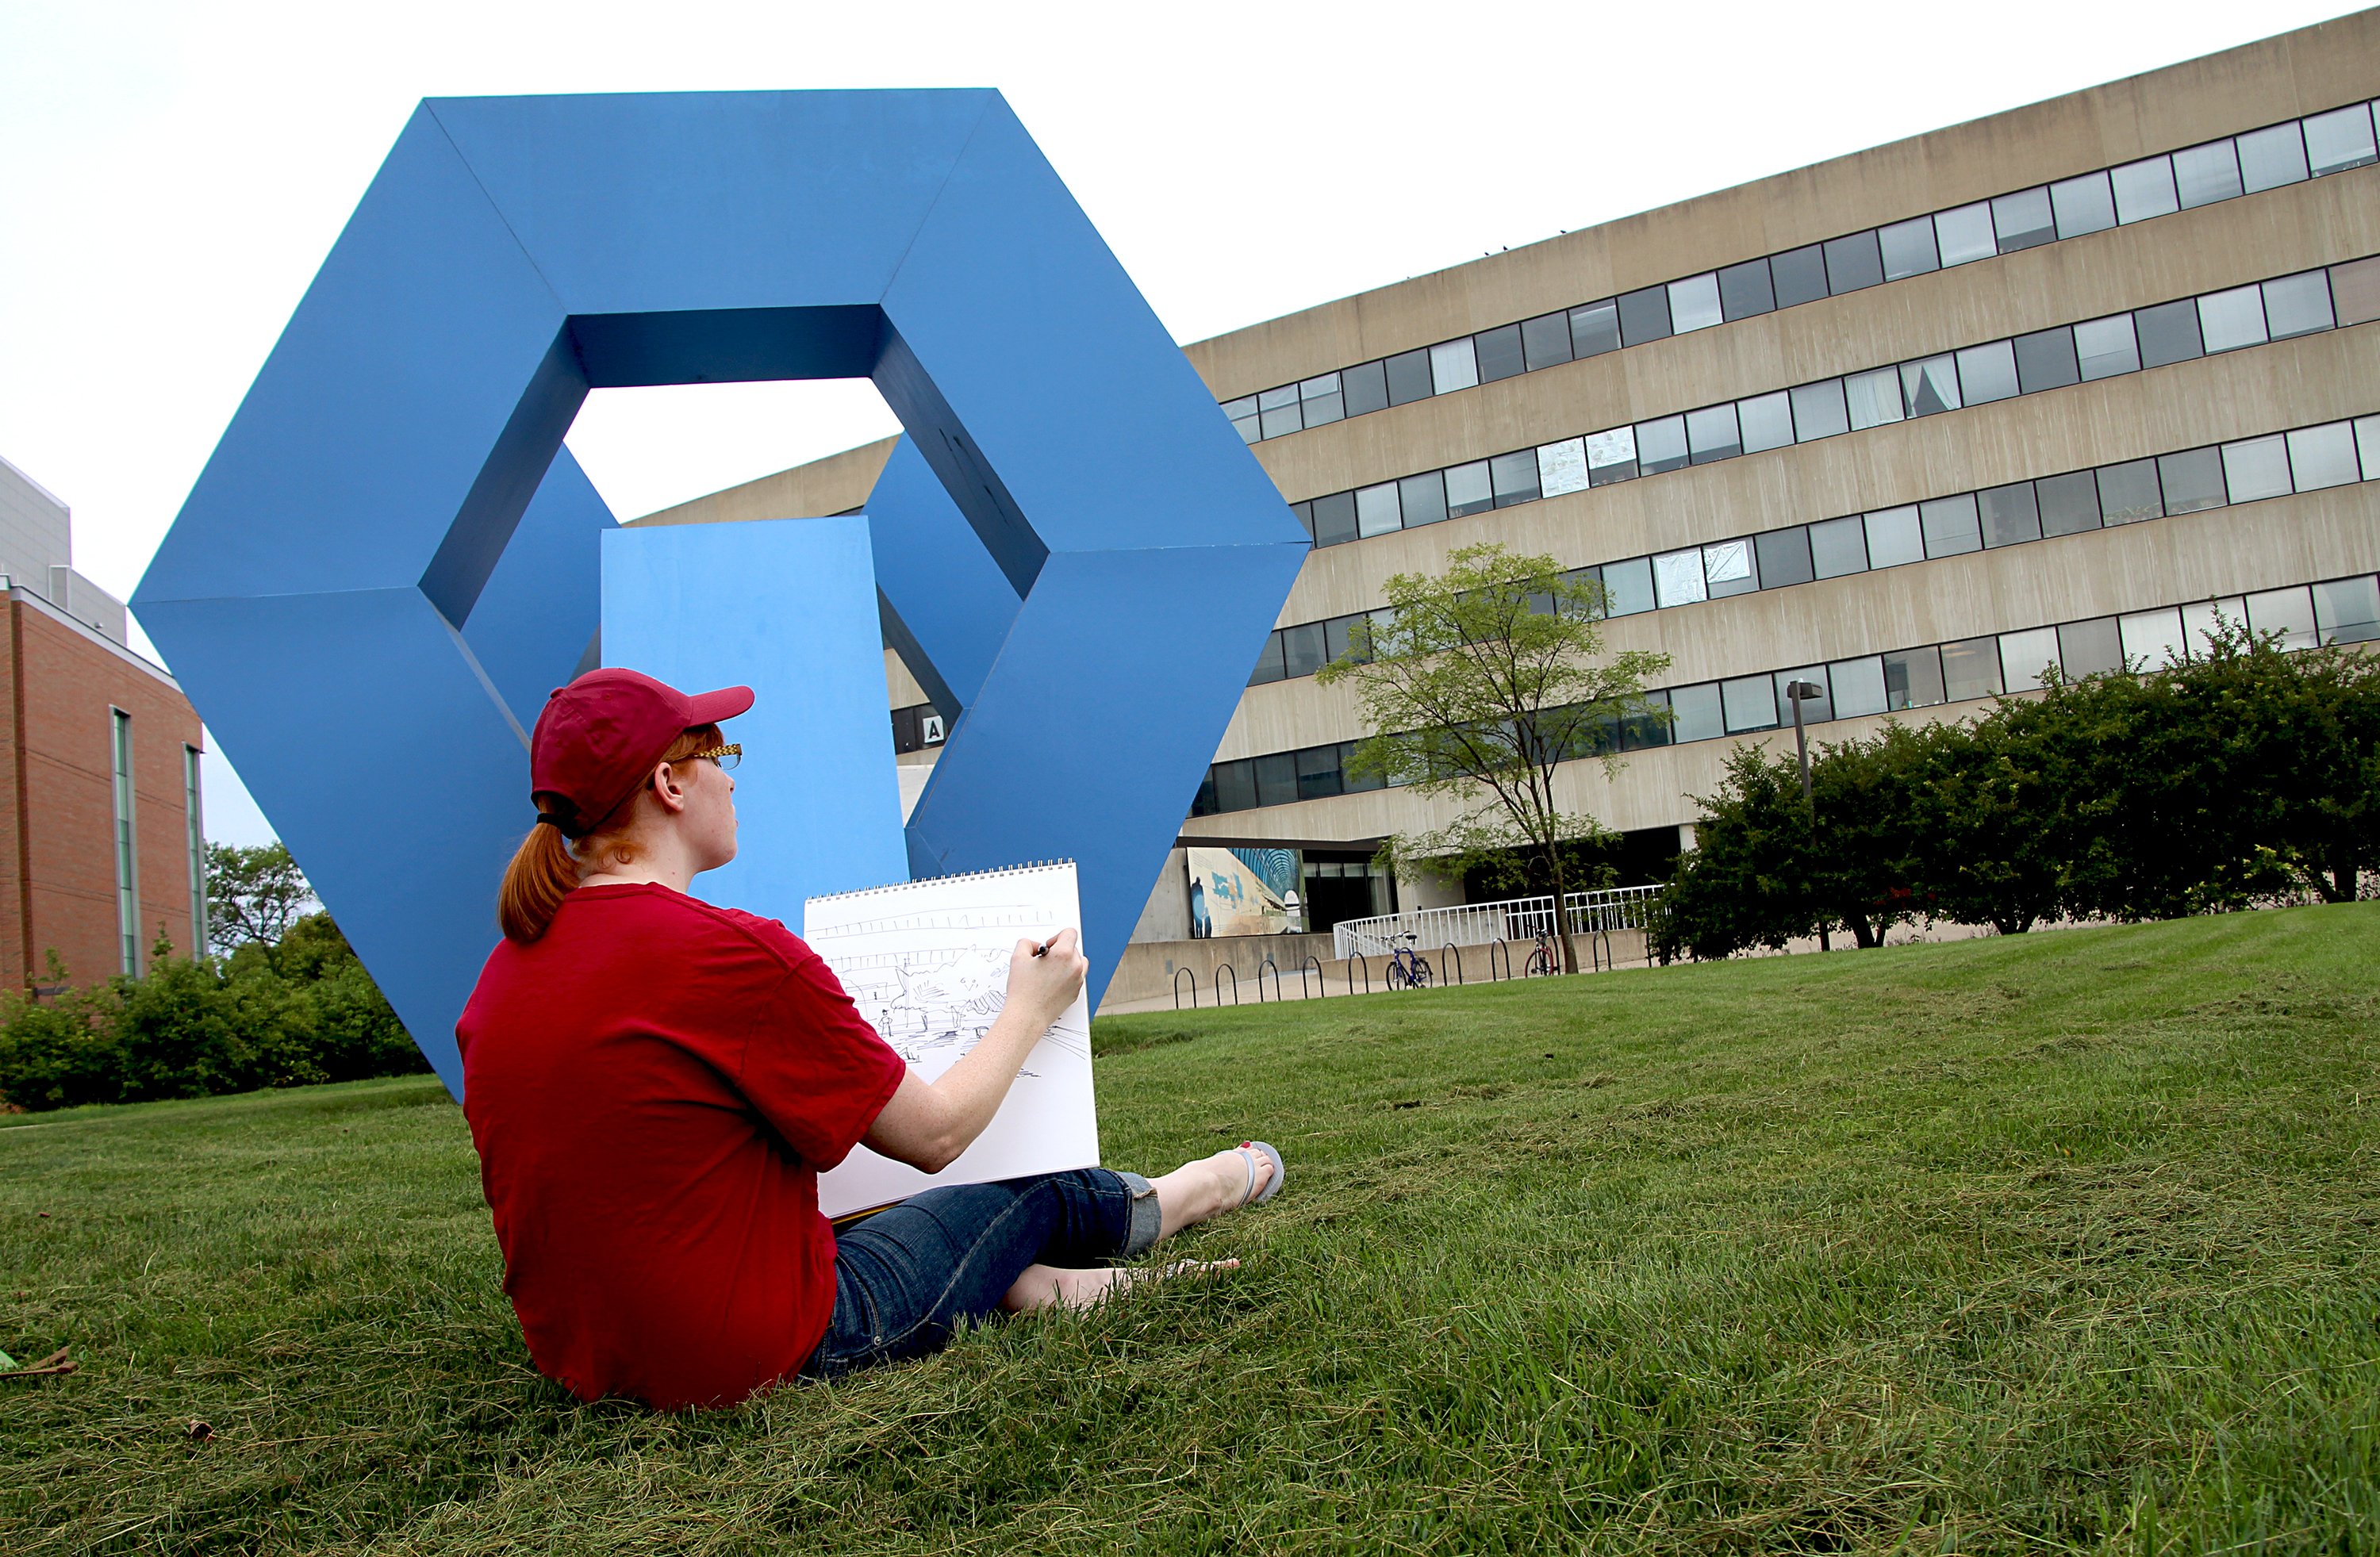 Integrated visual arts graduate student Taylor Carlson sketches the College of Design building.